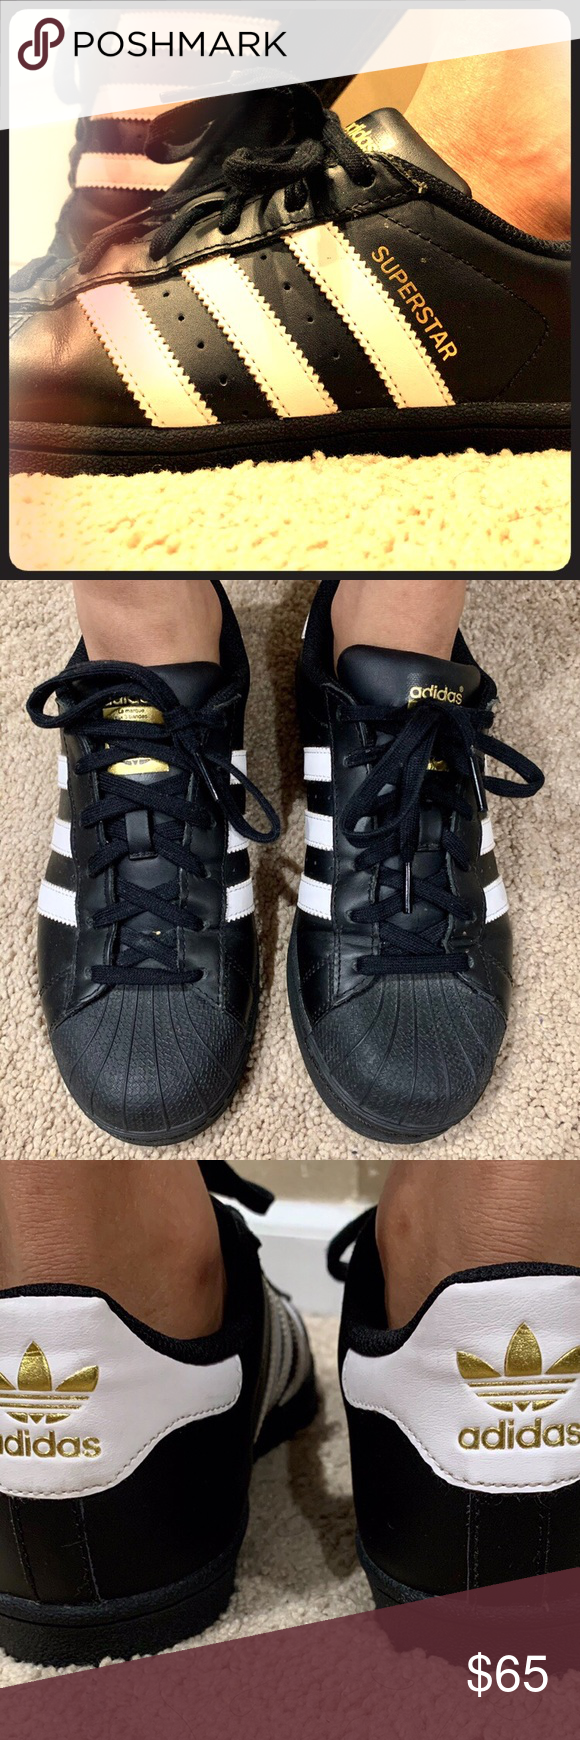 Adidas superstar black white and gold 65 Adidas superstar